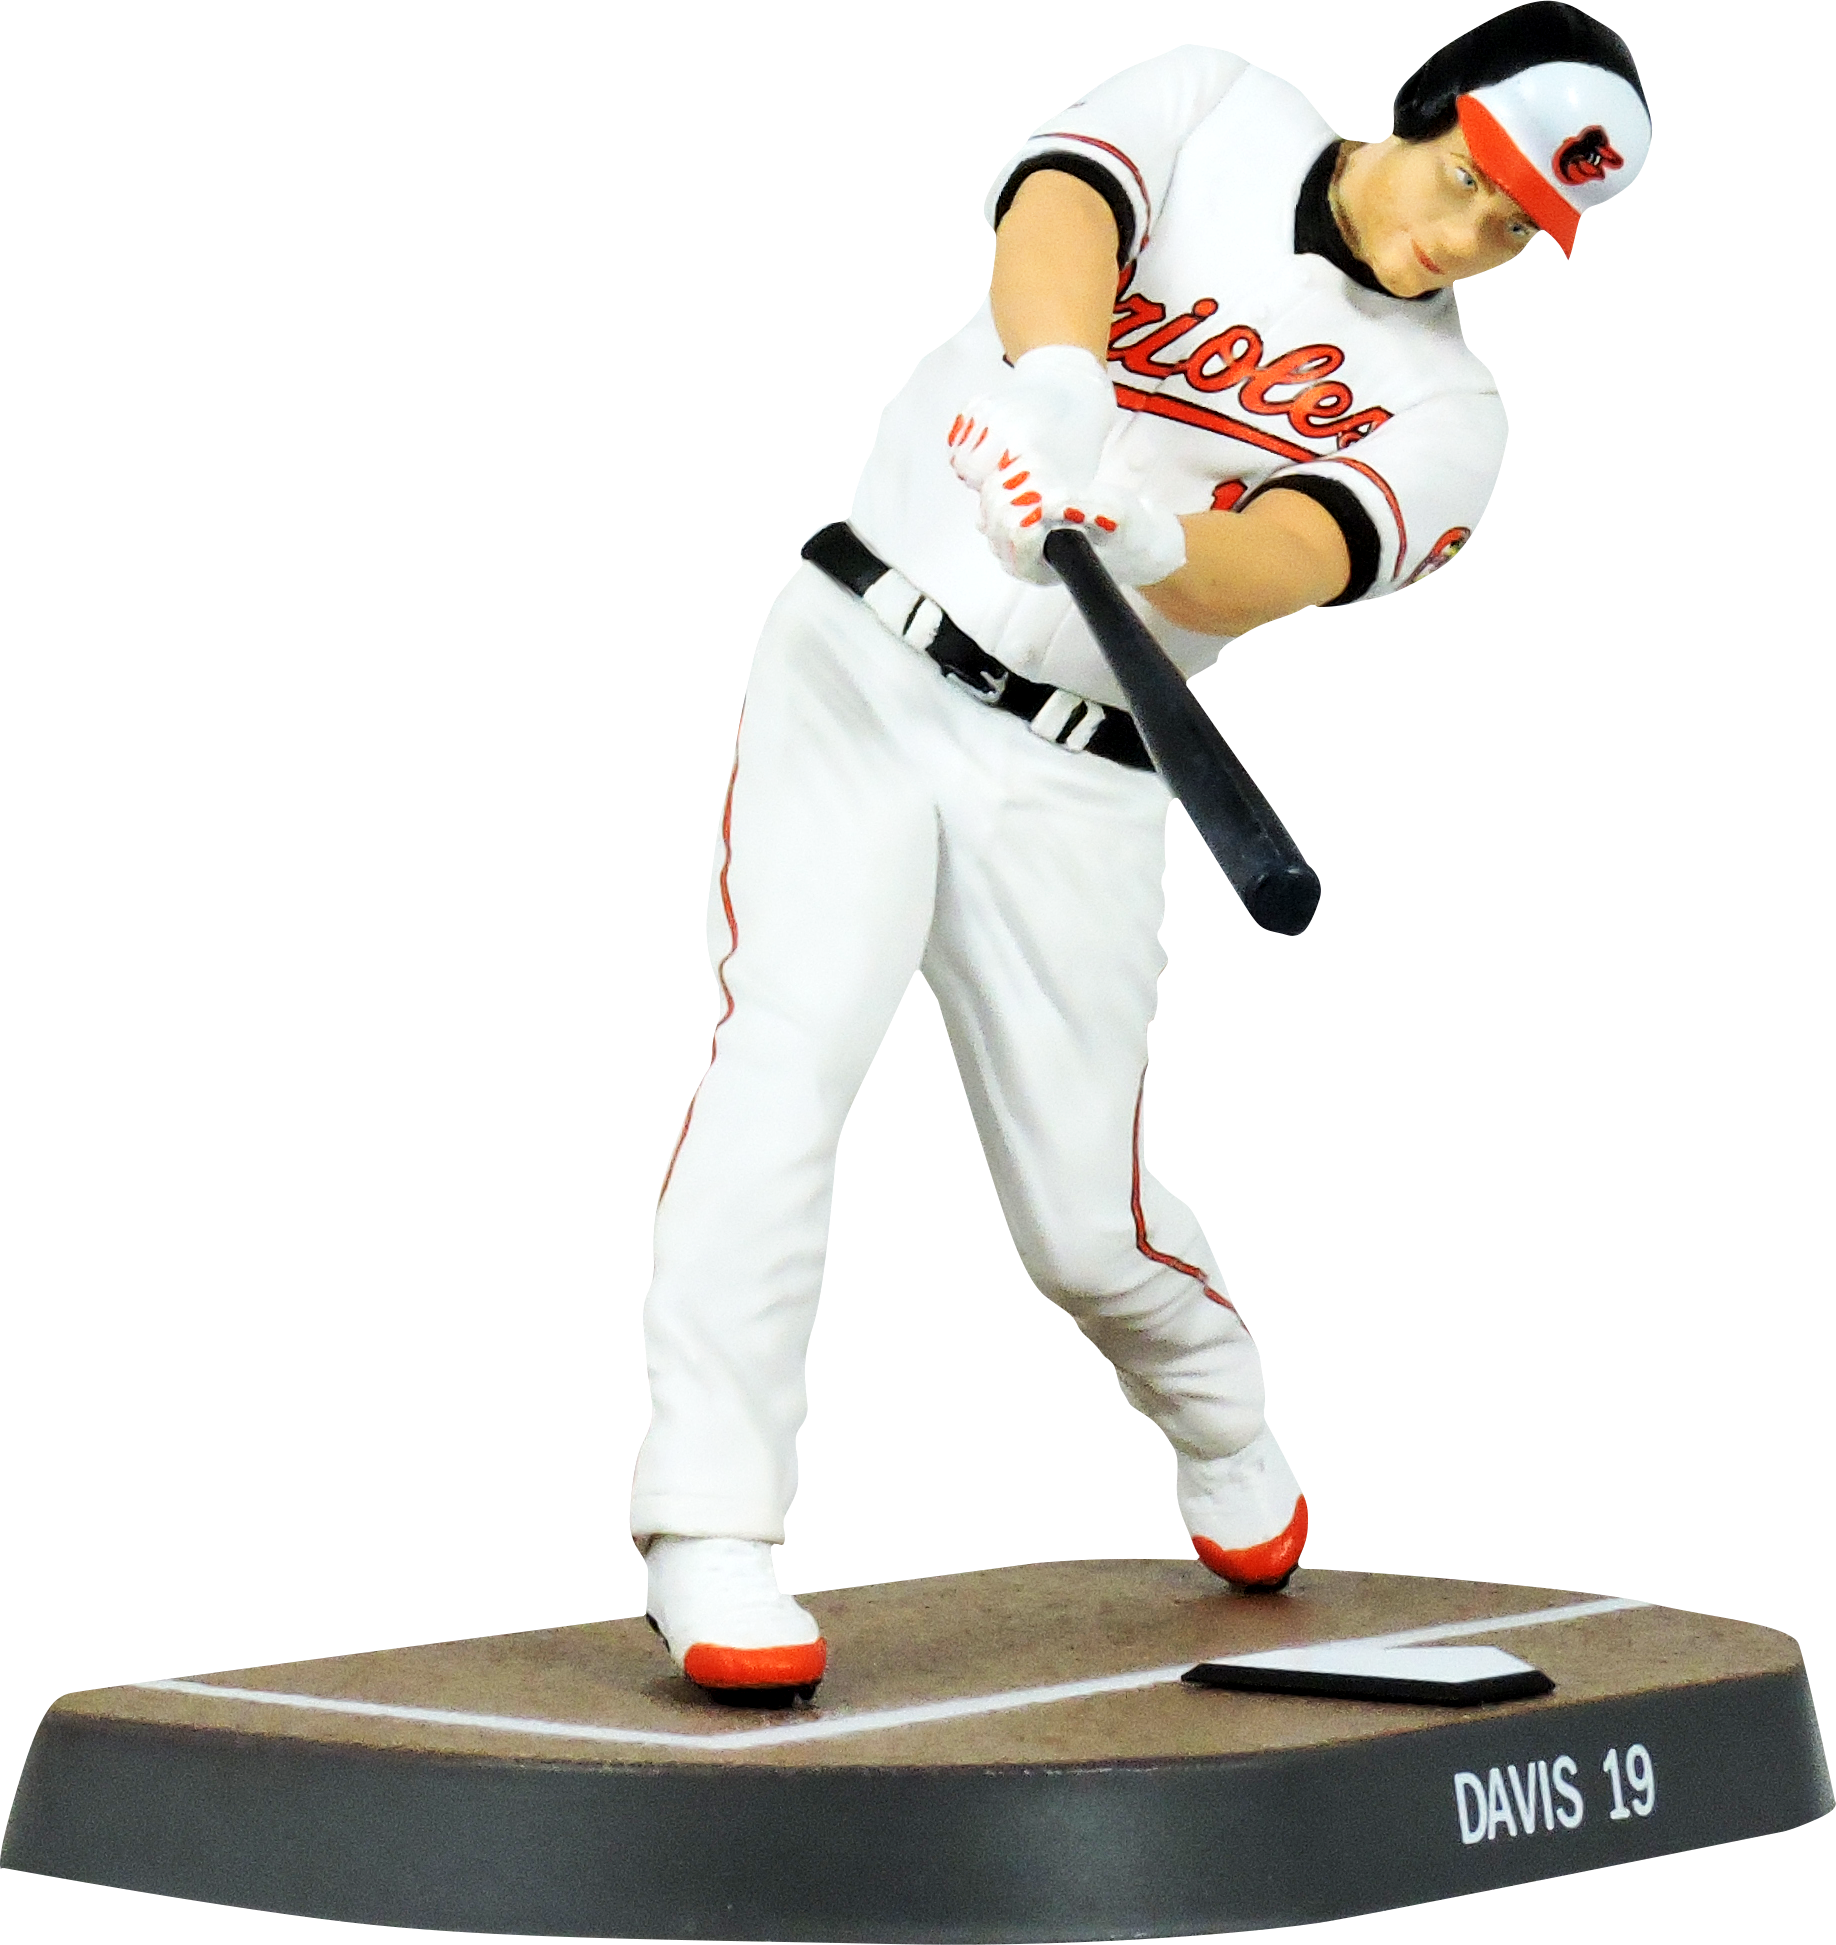 Chris Davis Image